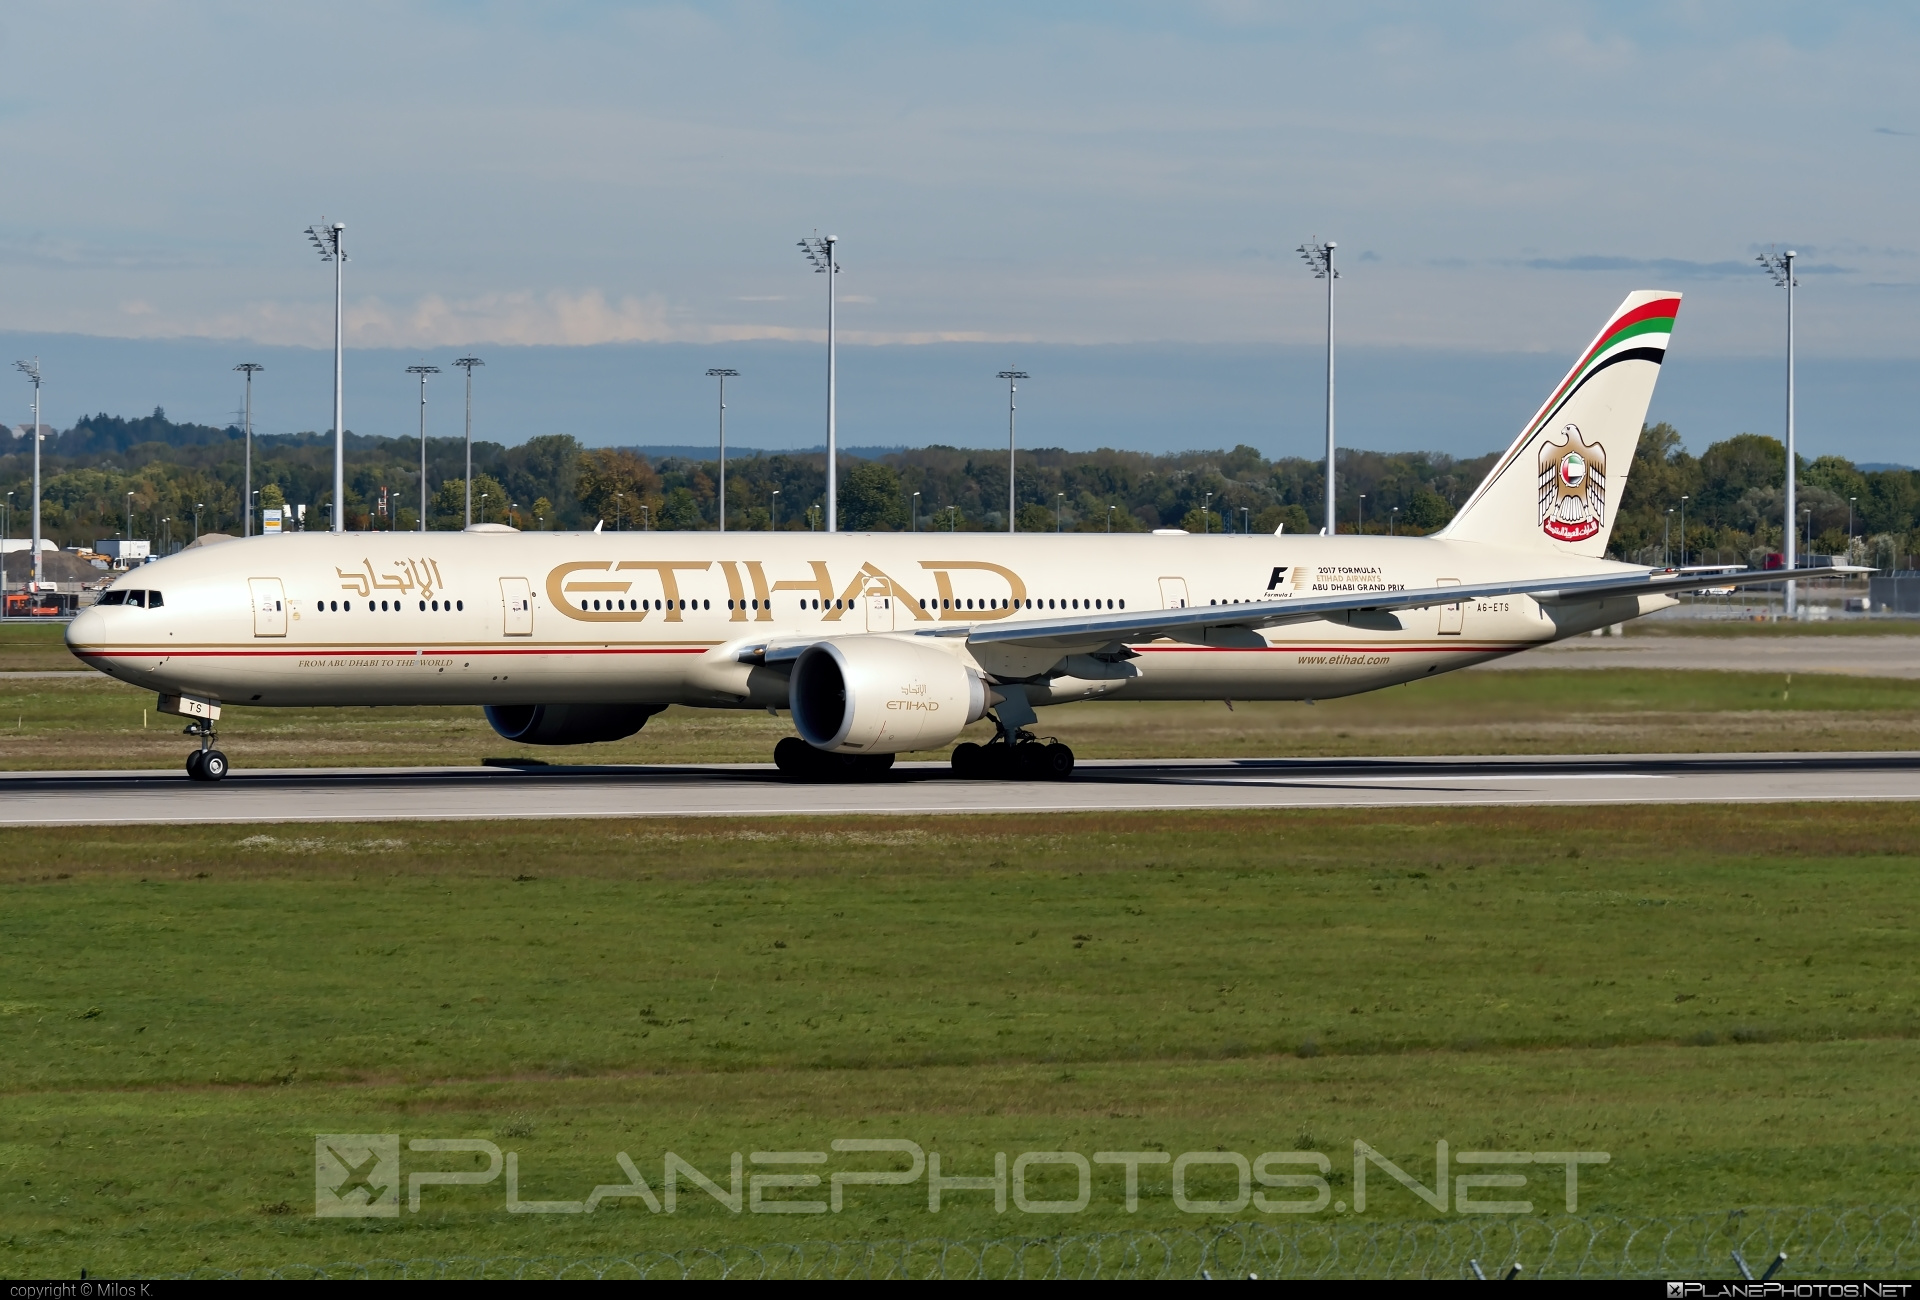 Boeing 777-300ER - A6-ETS operated by Etihad Airways #b777 #b777er #boeing #boeing777 #etihad #etihadairways #tripleseven